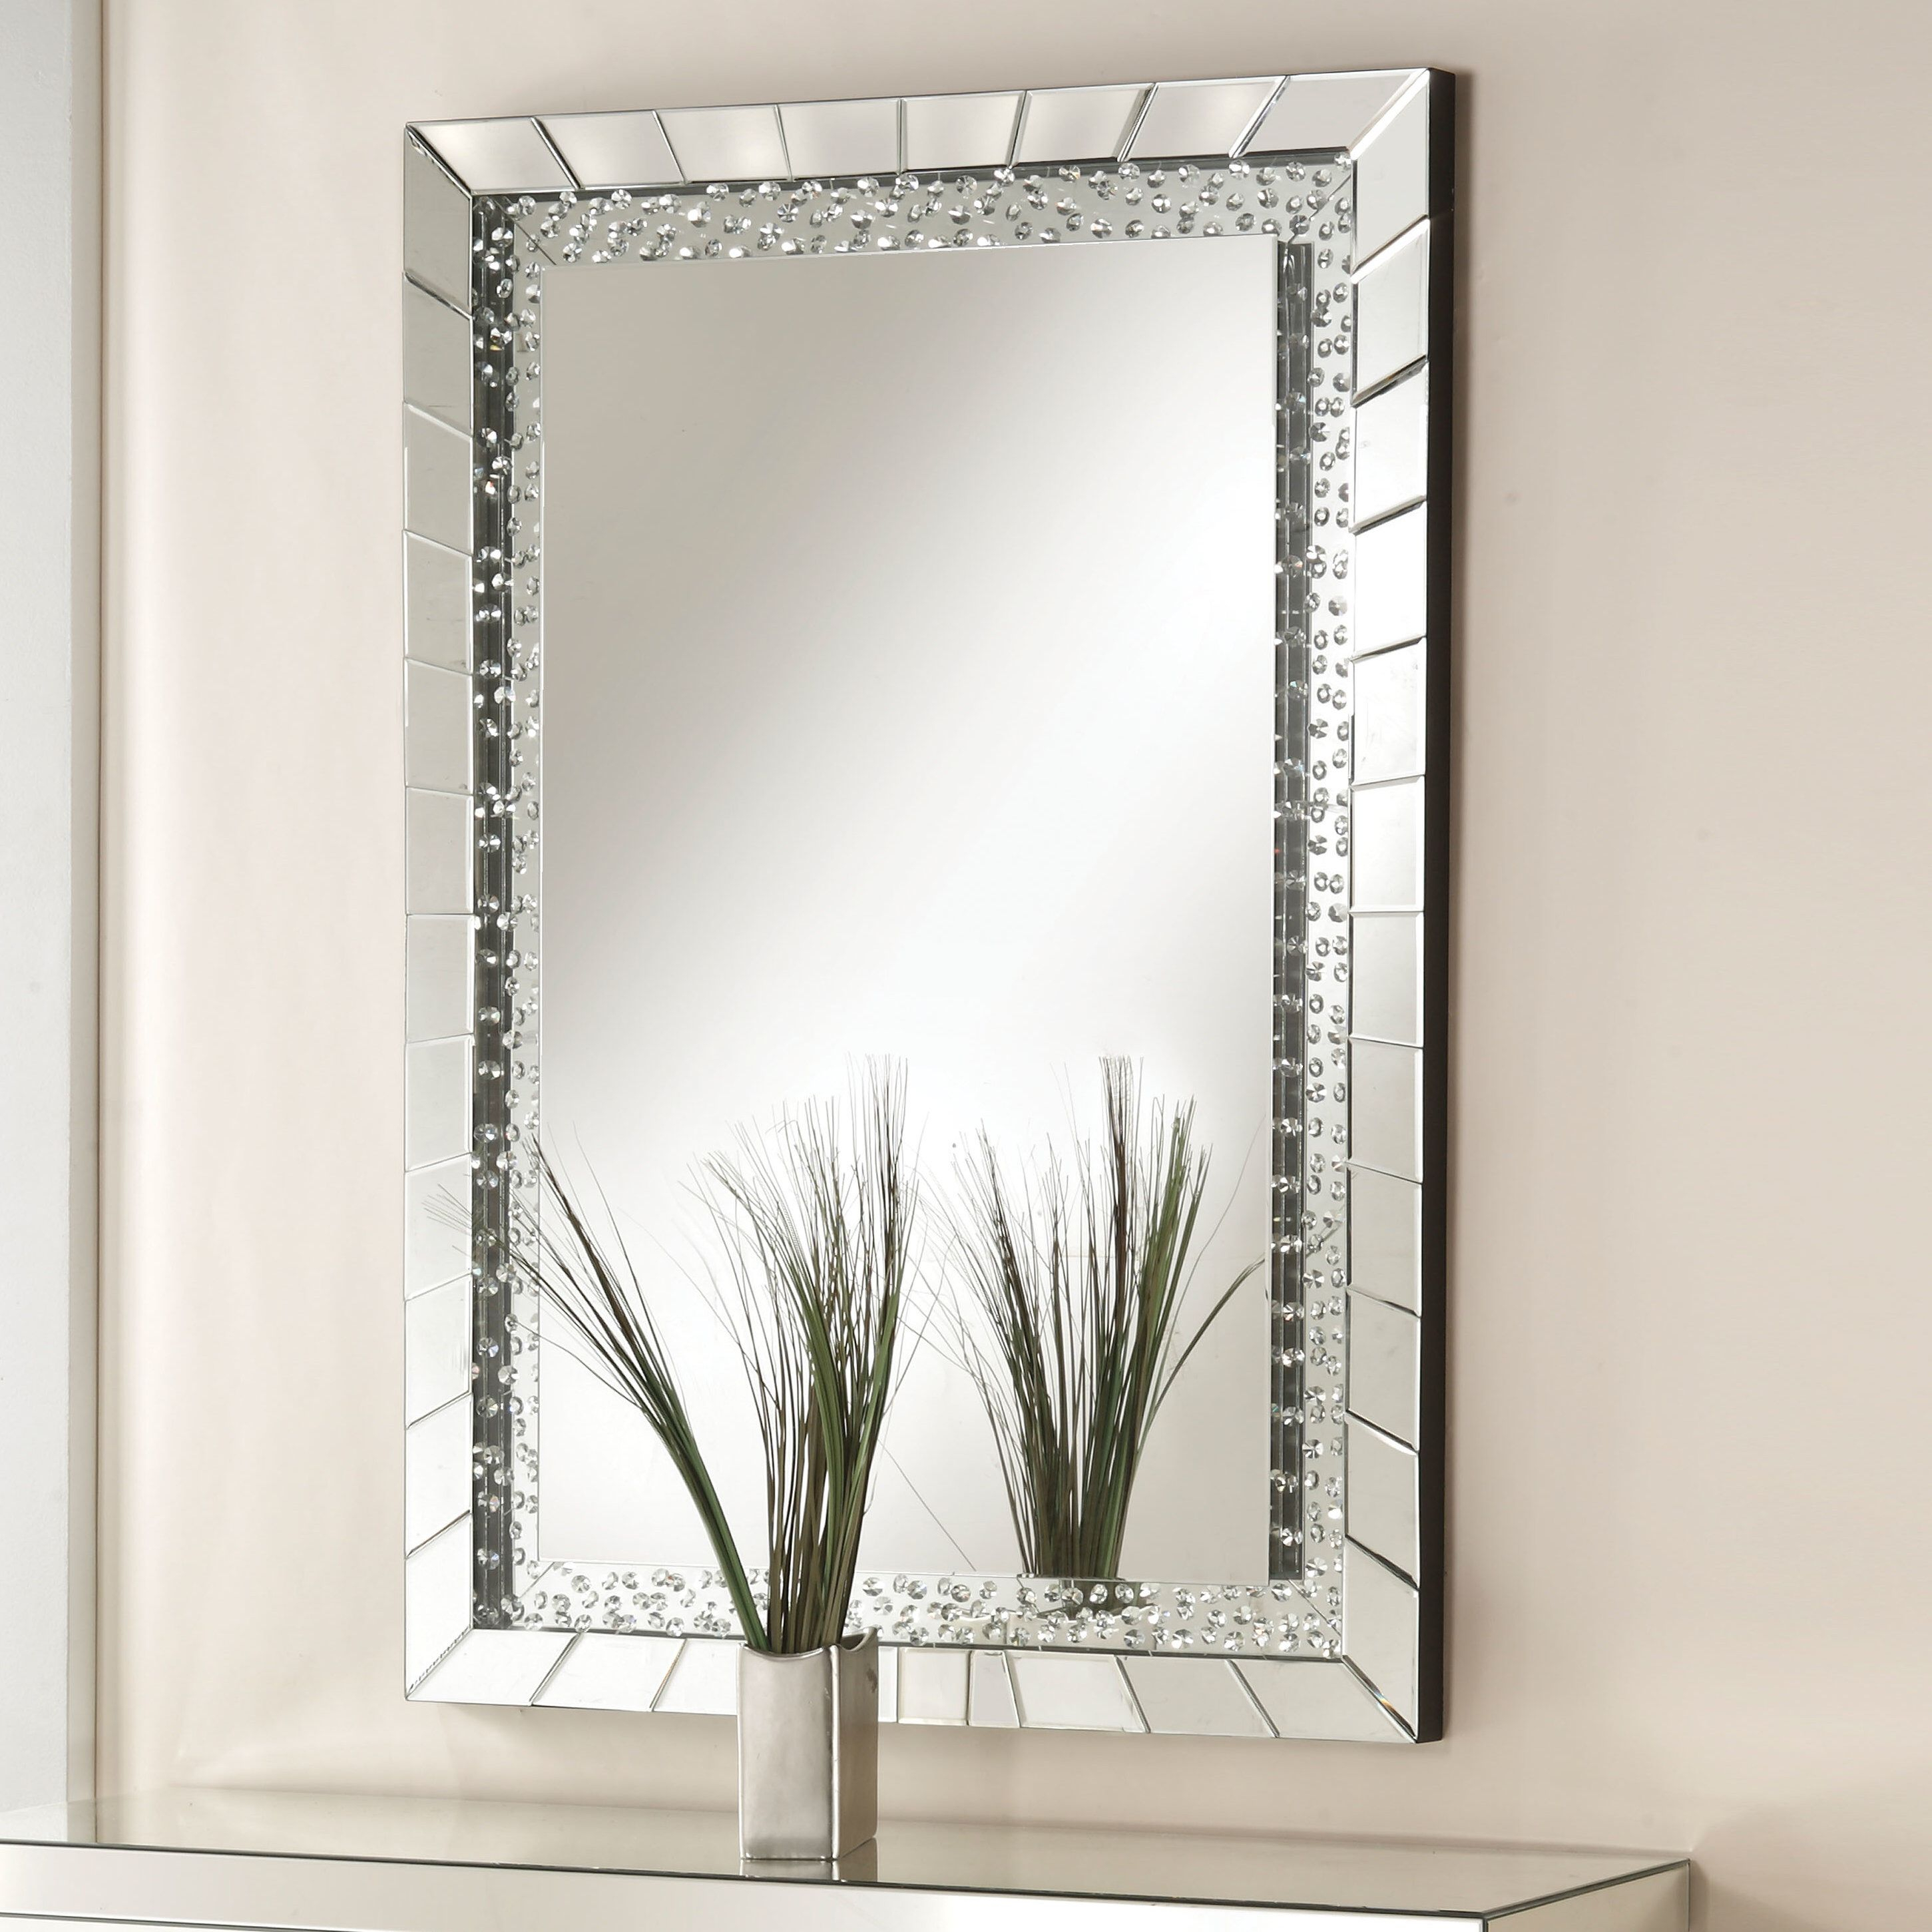 Longo Accent Mirror | Home Decor | Mirror, Decor, Accent Decor Regarding Lake Park Beveled Beaded Accent Wall Mirrors (View 6 of 20)